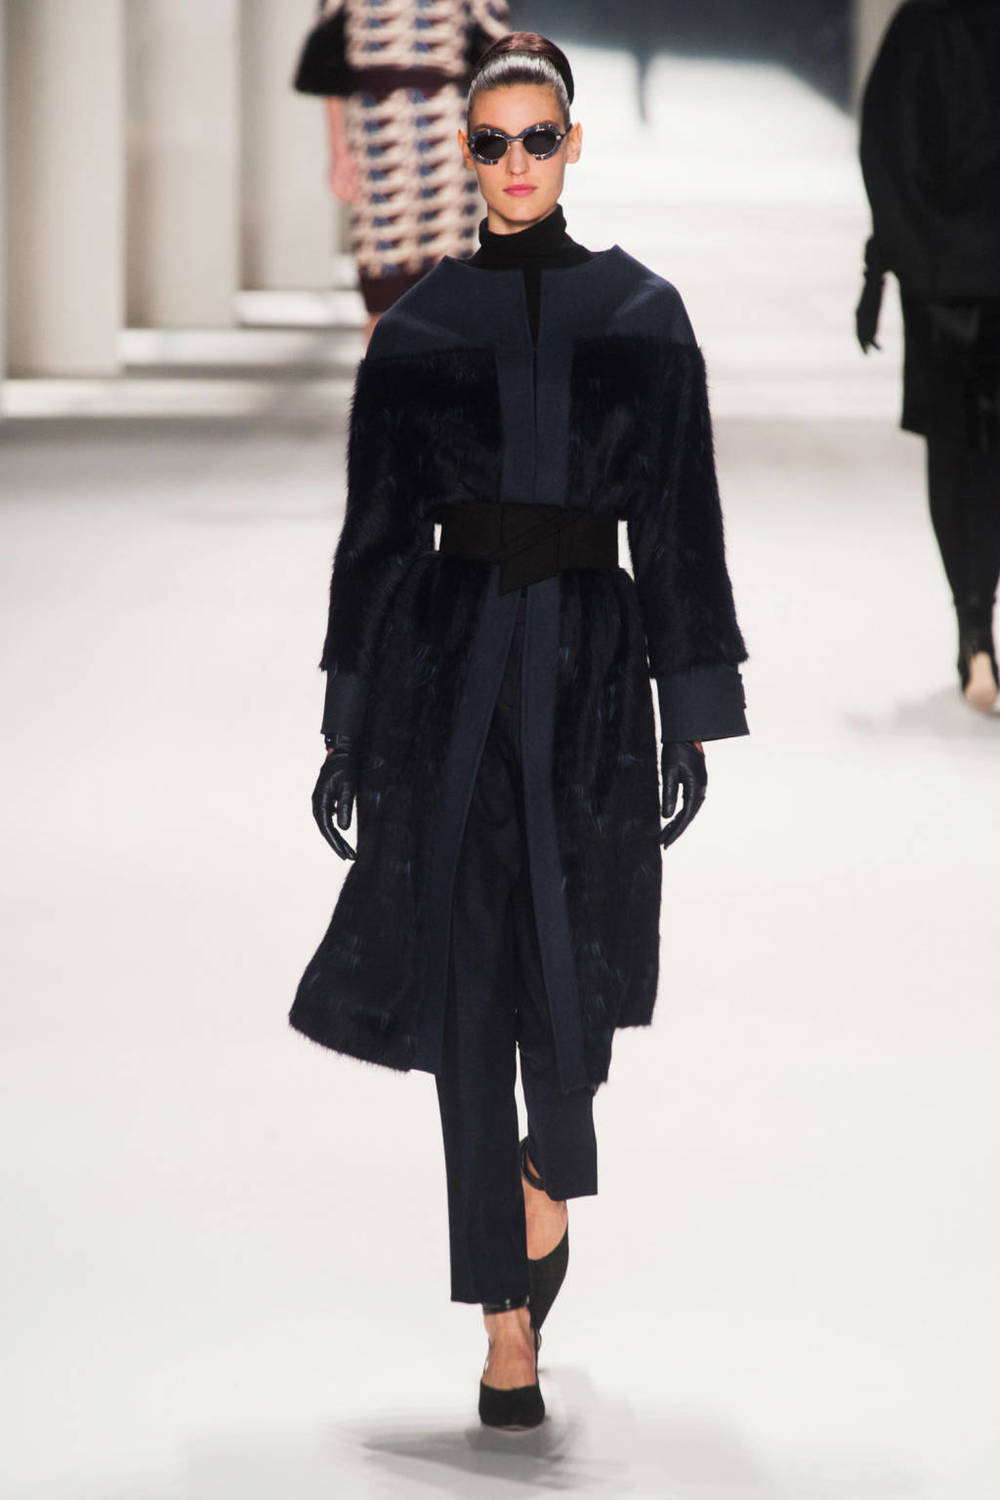 Carolina Herrera (robe coat, fur accents)